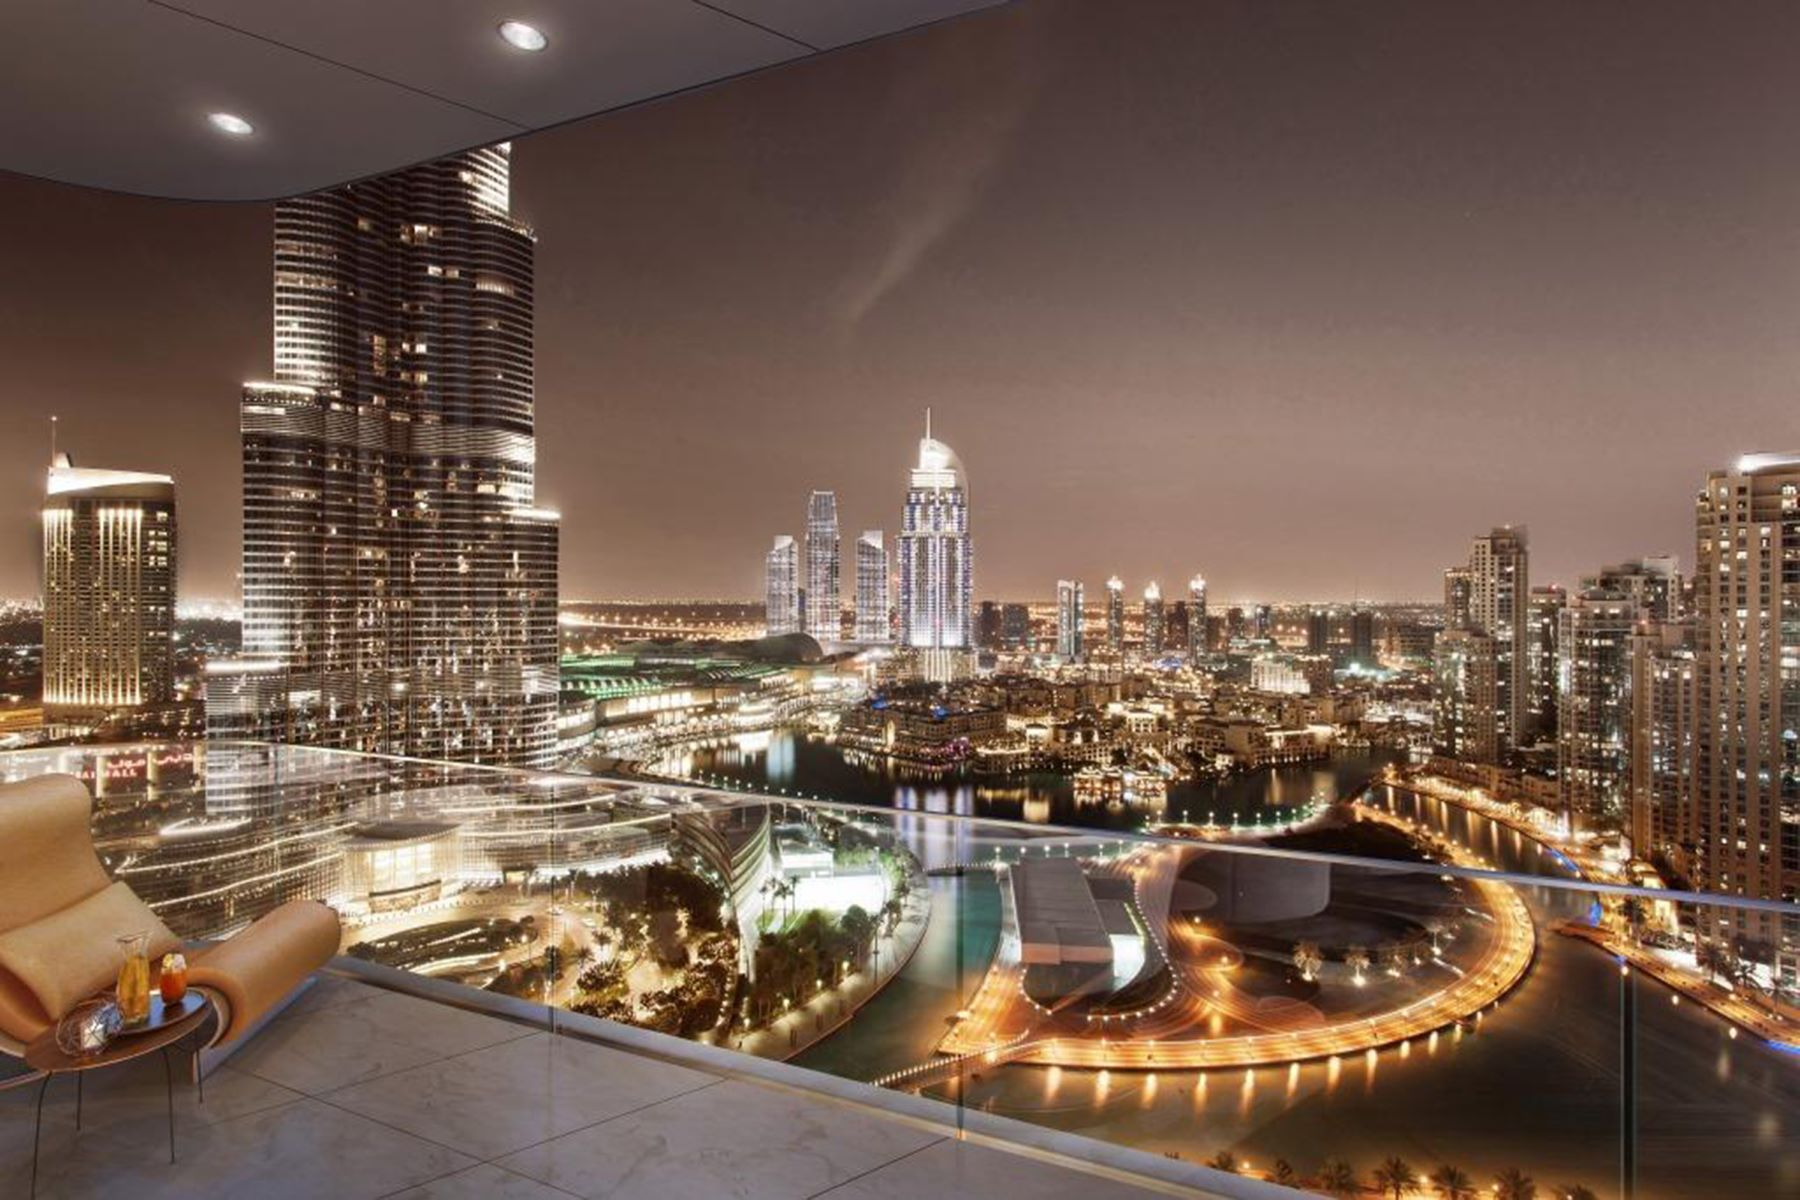 Apartment for Sale at Luxurious 4BR Apartment with Fountain View Downtown Dubai IL Primo, Dubai, 00000 United Arab Emirates